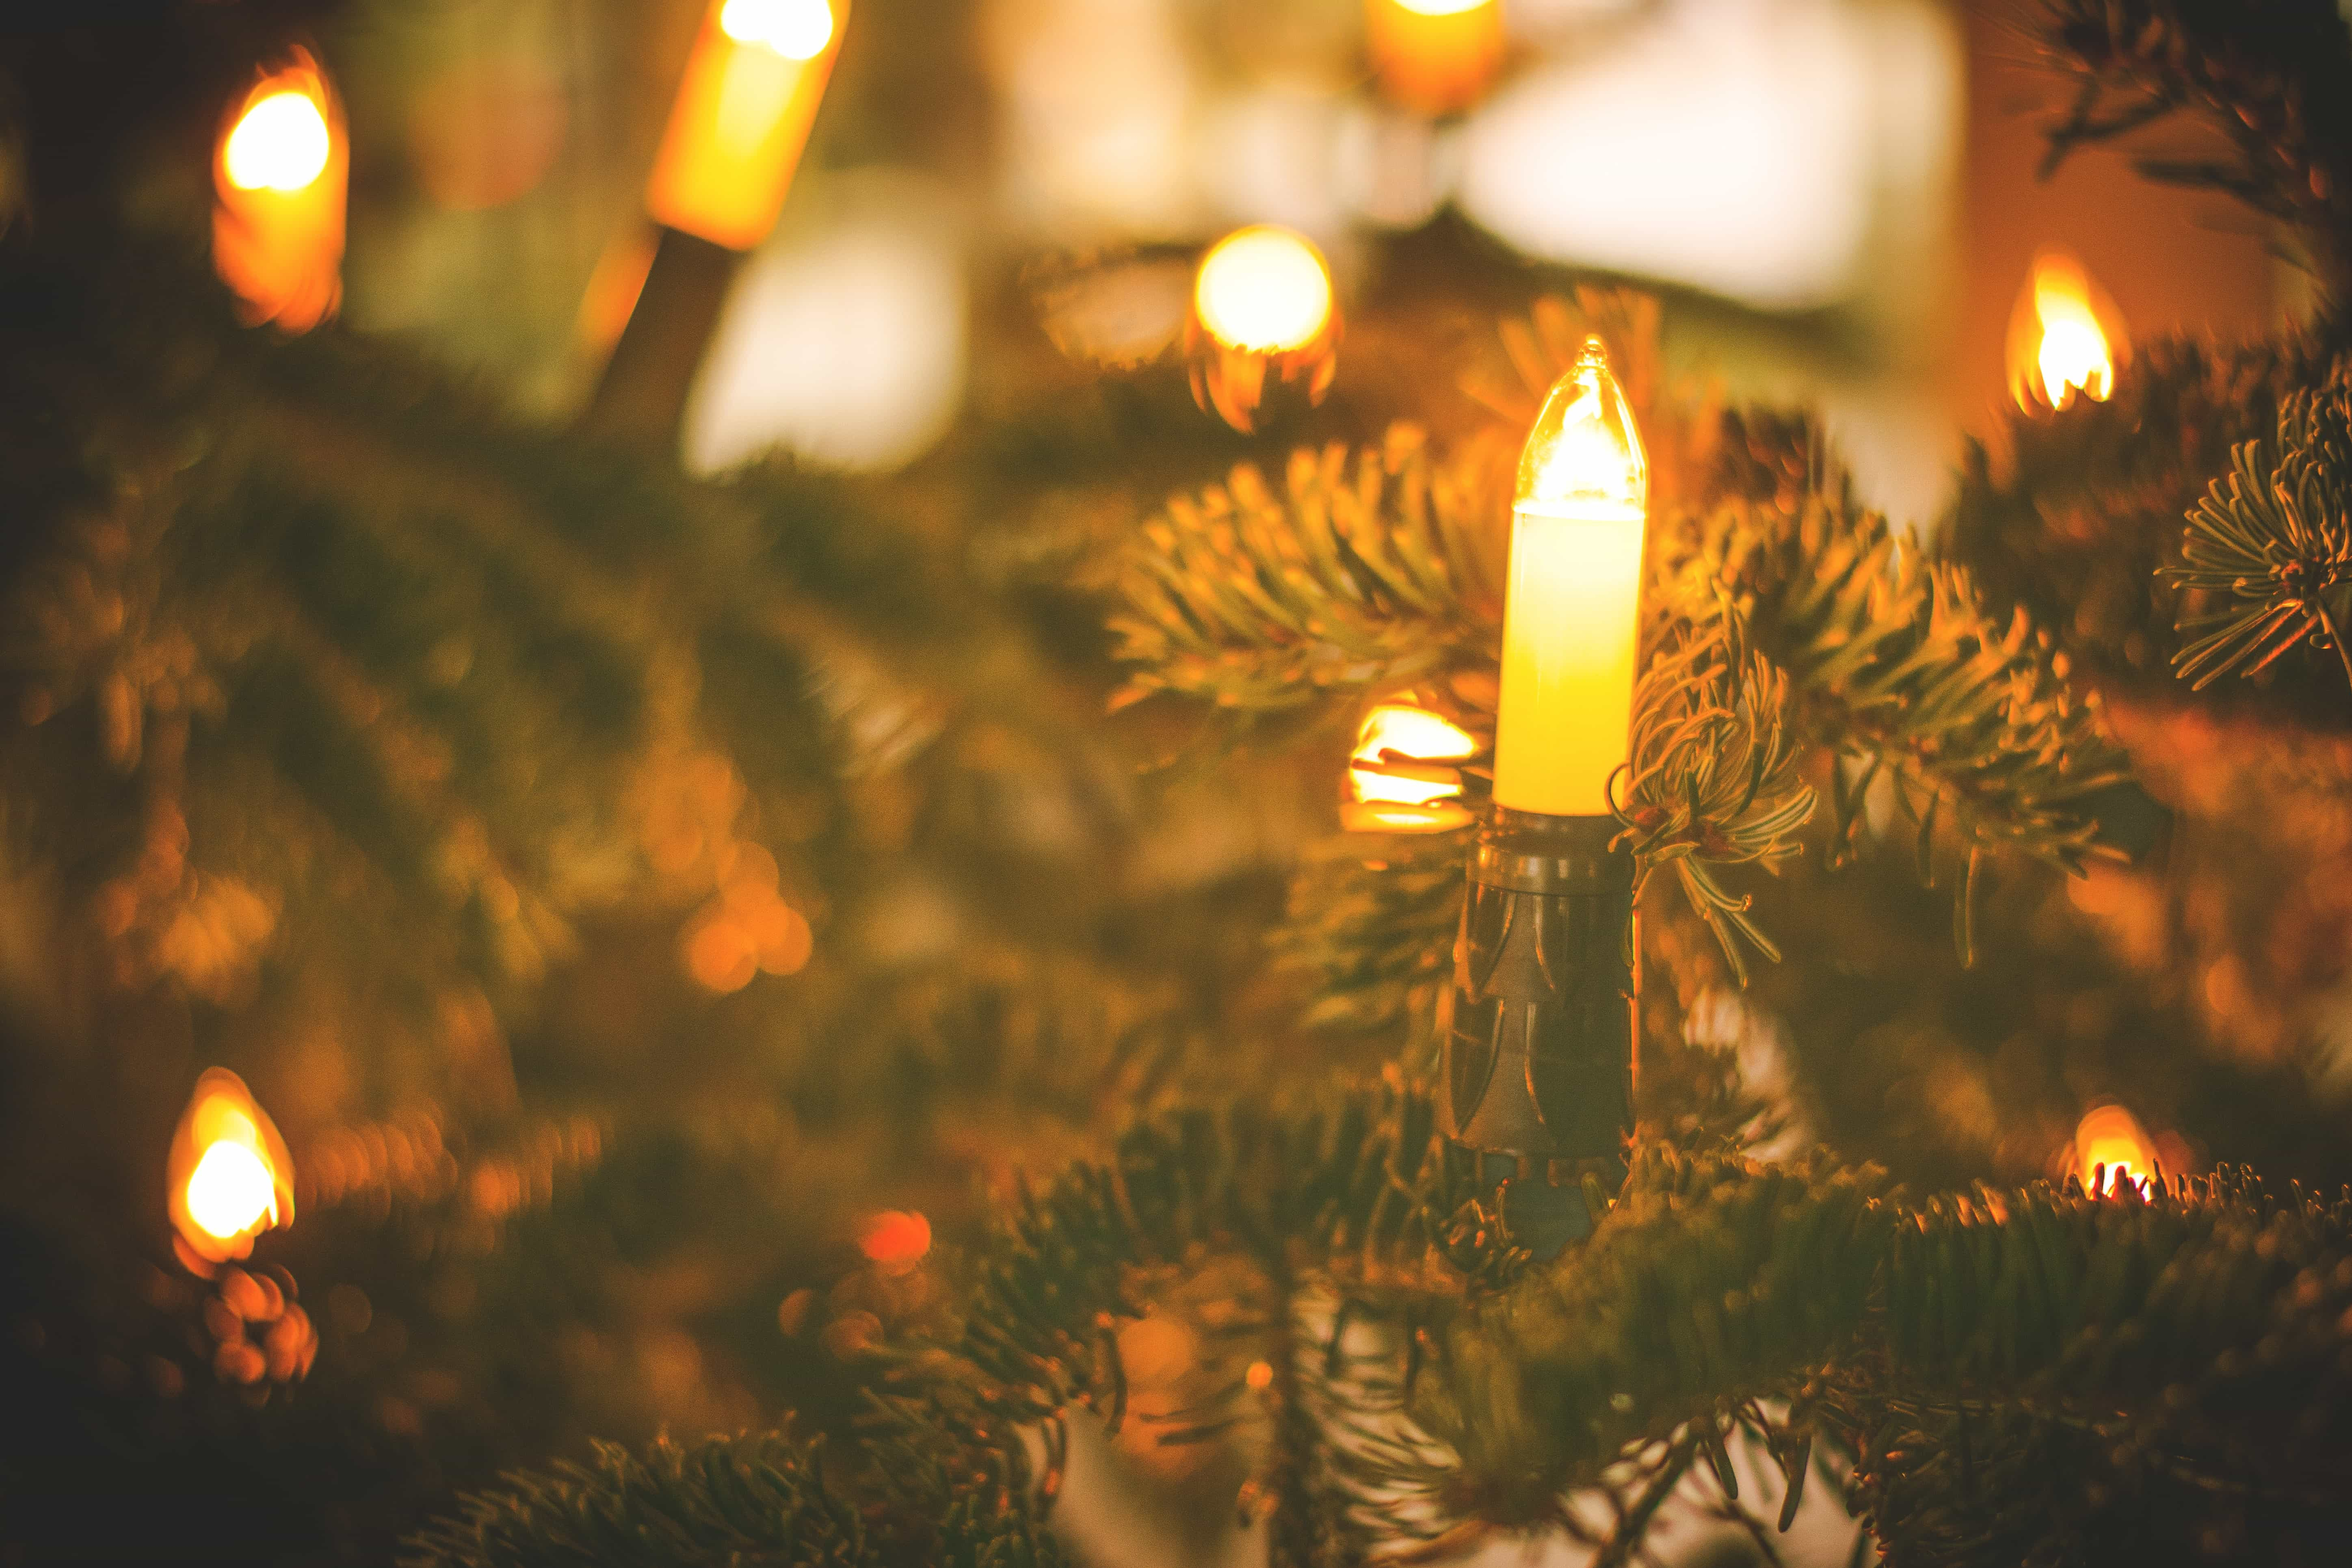 Christmas Lights Recycling 2020 How to Properly Recycle Your Old Christmas Tree Lights | GreenCitizen